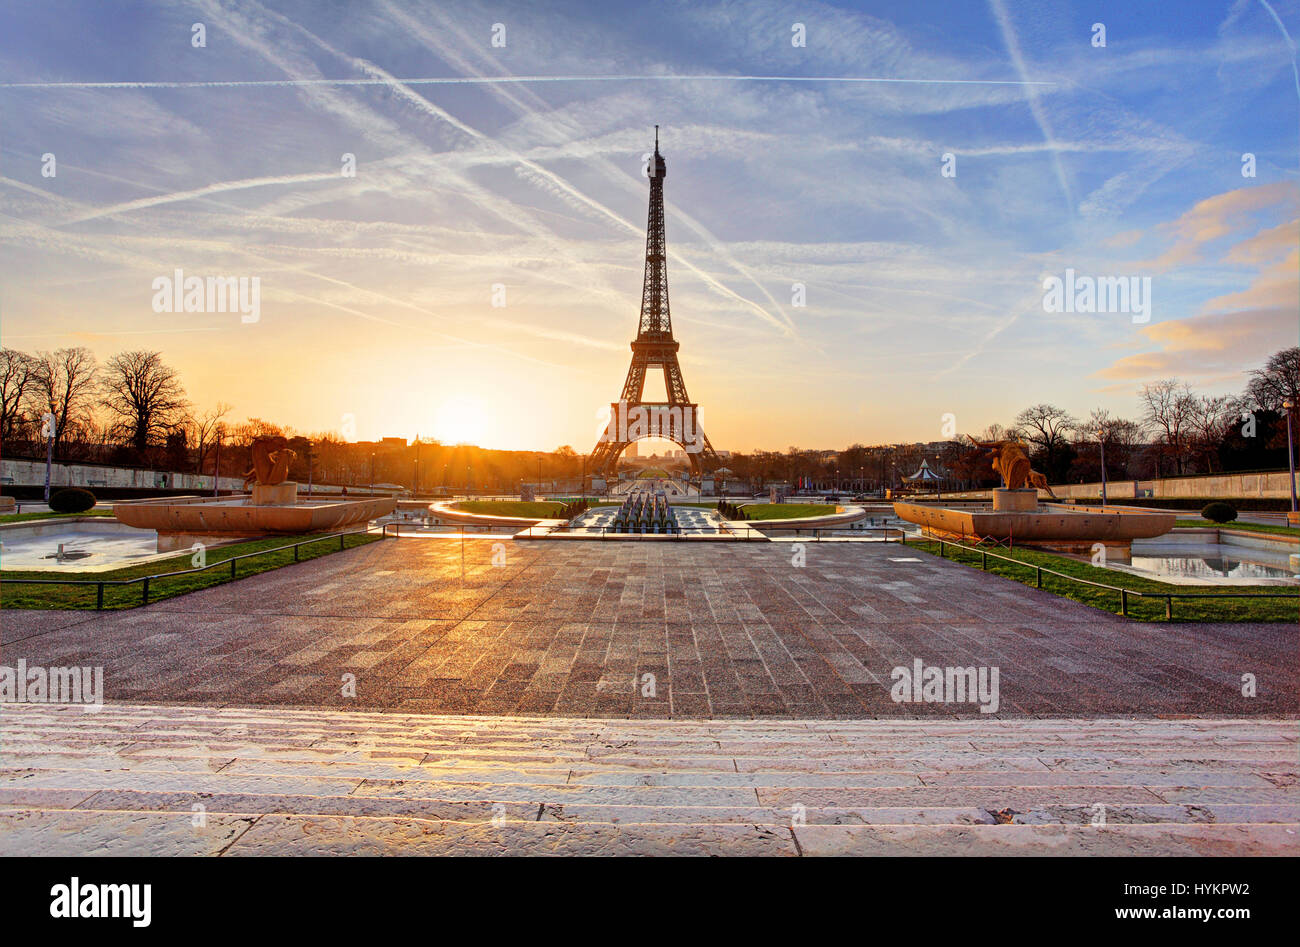 Sunrise in Paris, with the Eiffel Tower - Stock Image